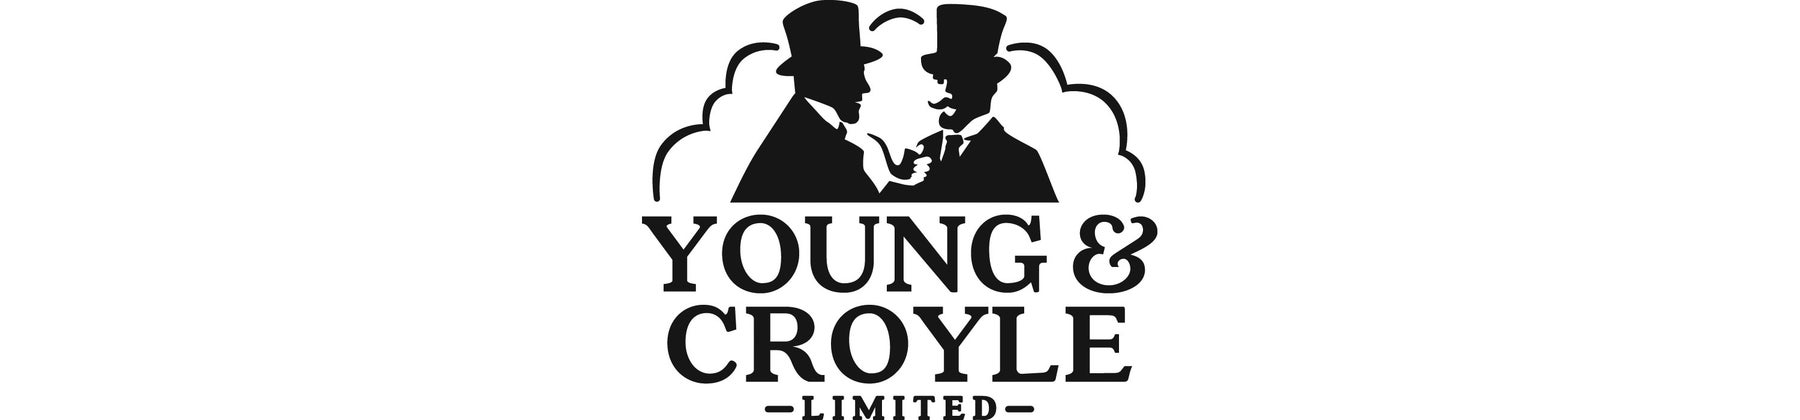 Young & Croyle, Ltd